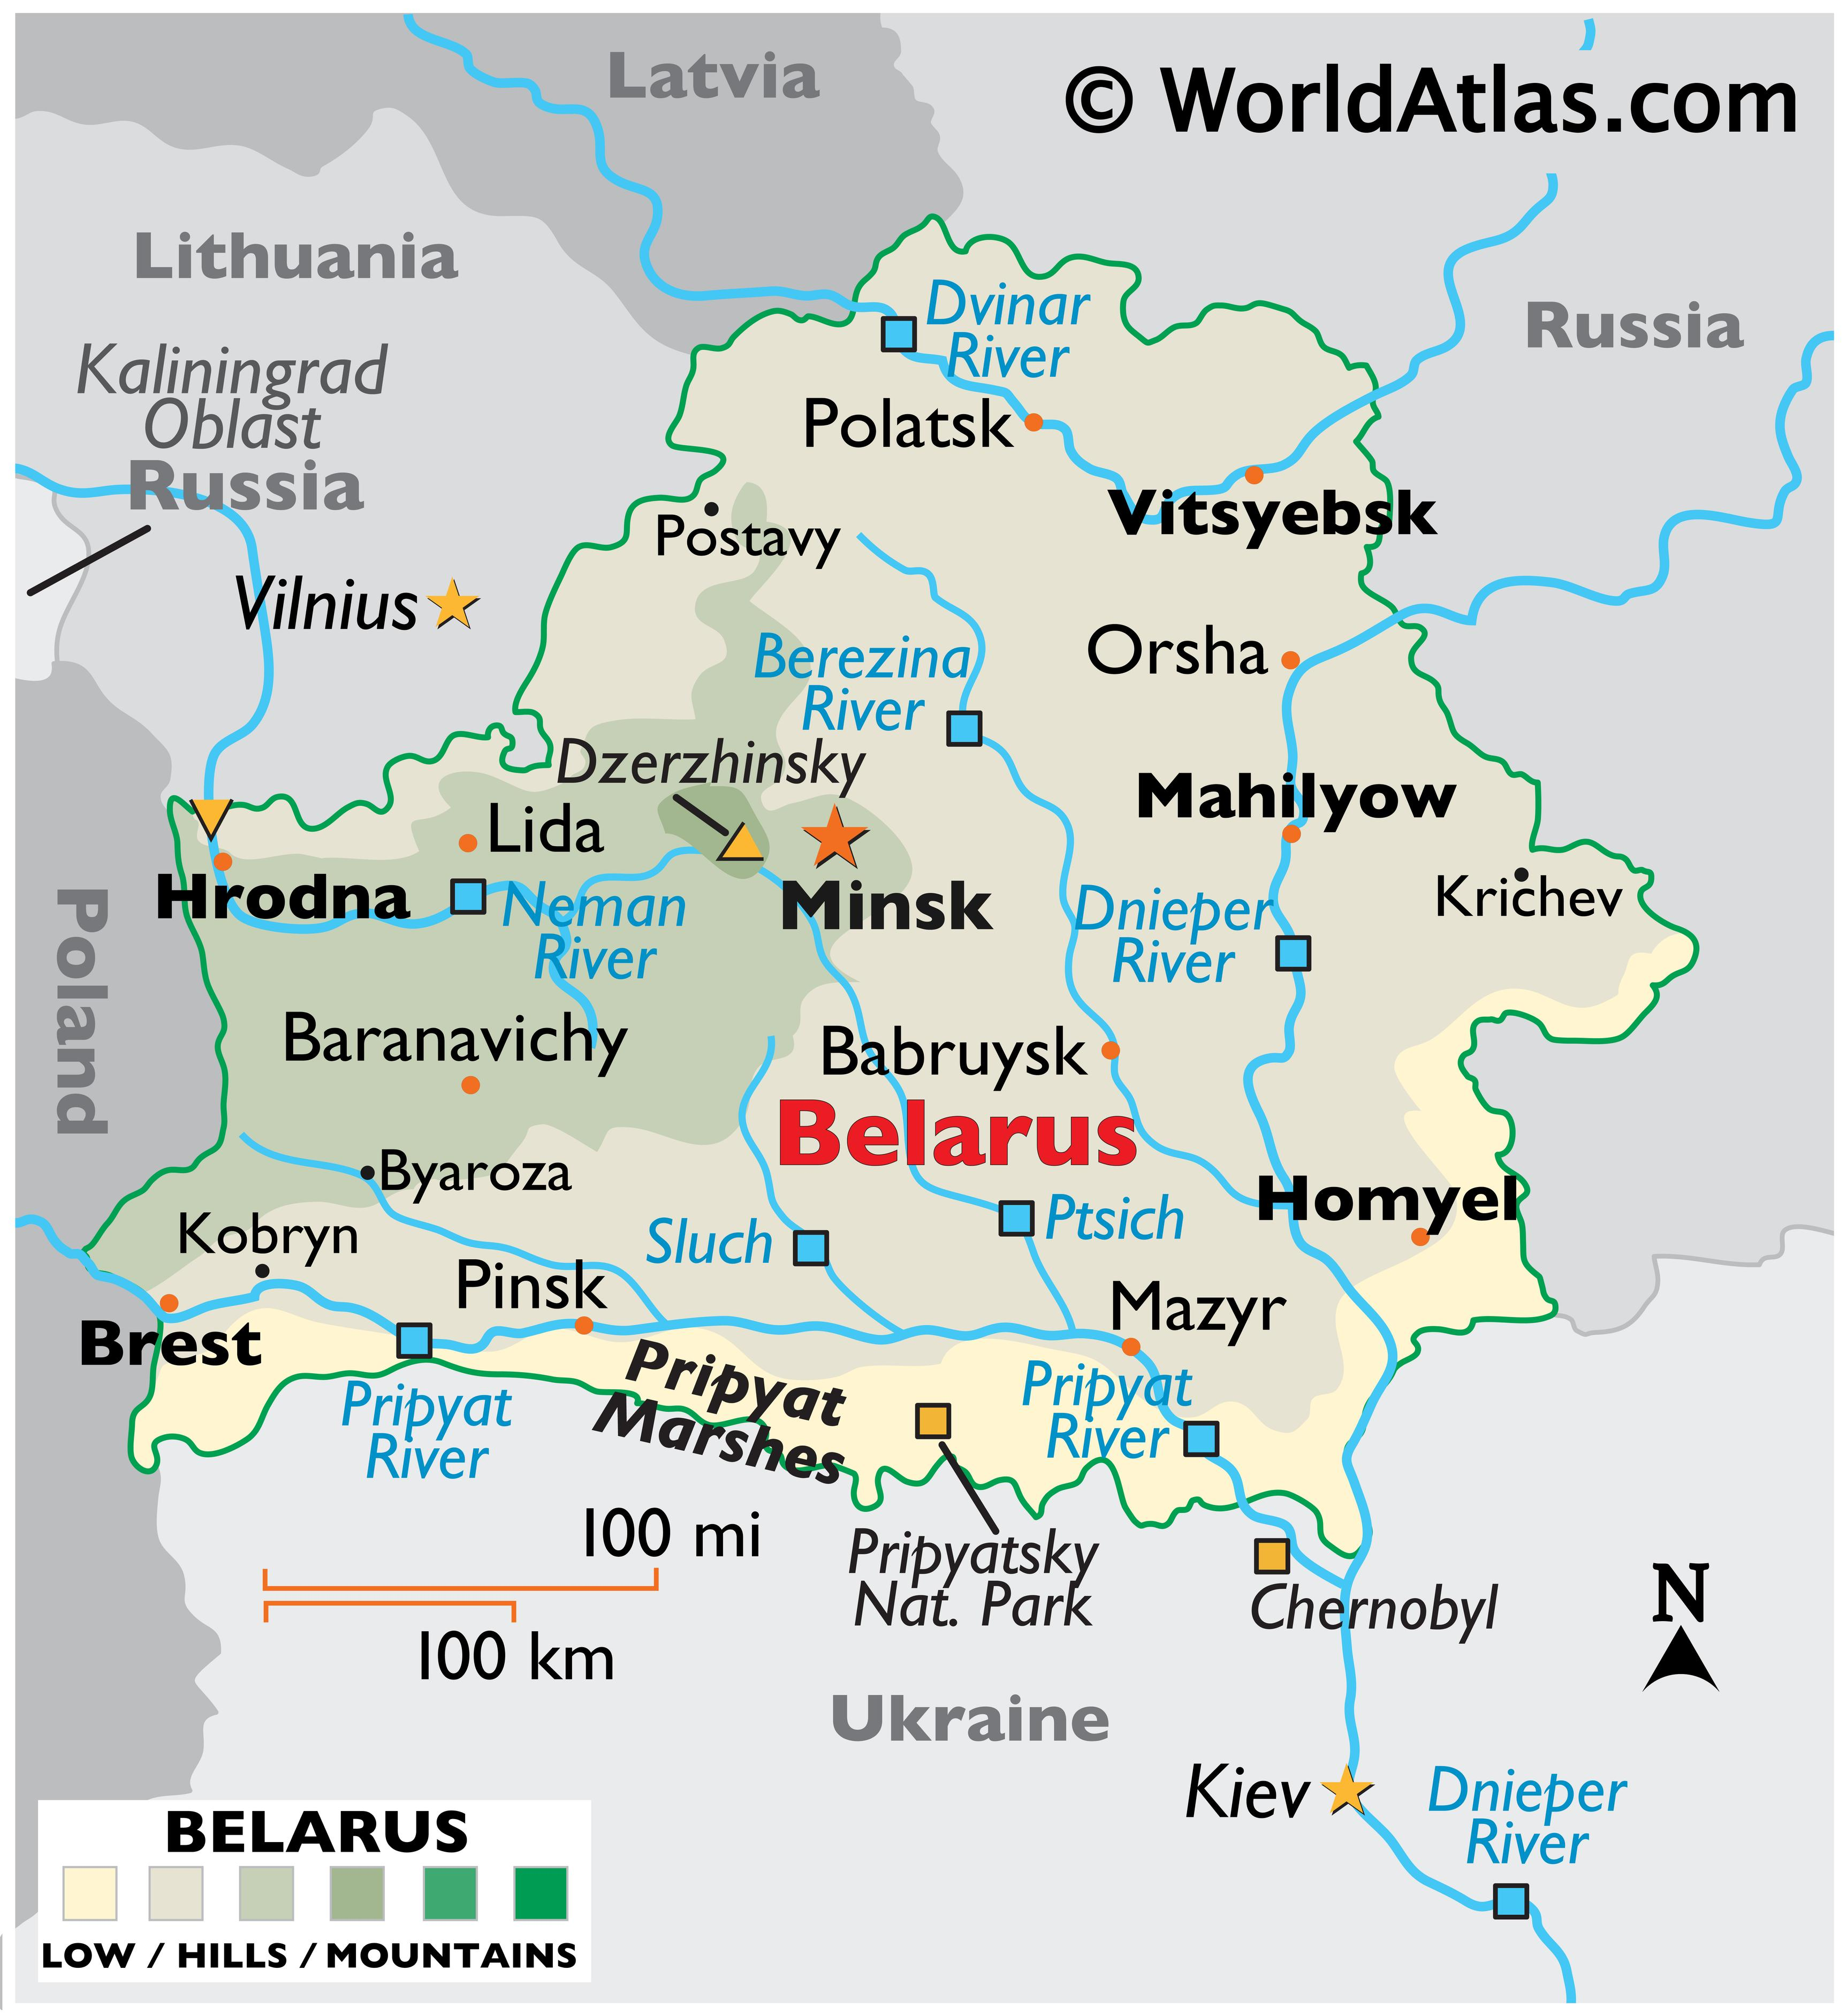 Physical Map of Belarus showing terrain, major rivers, extreme points, important cities, international boundaries, etc.